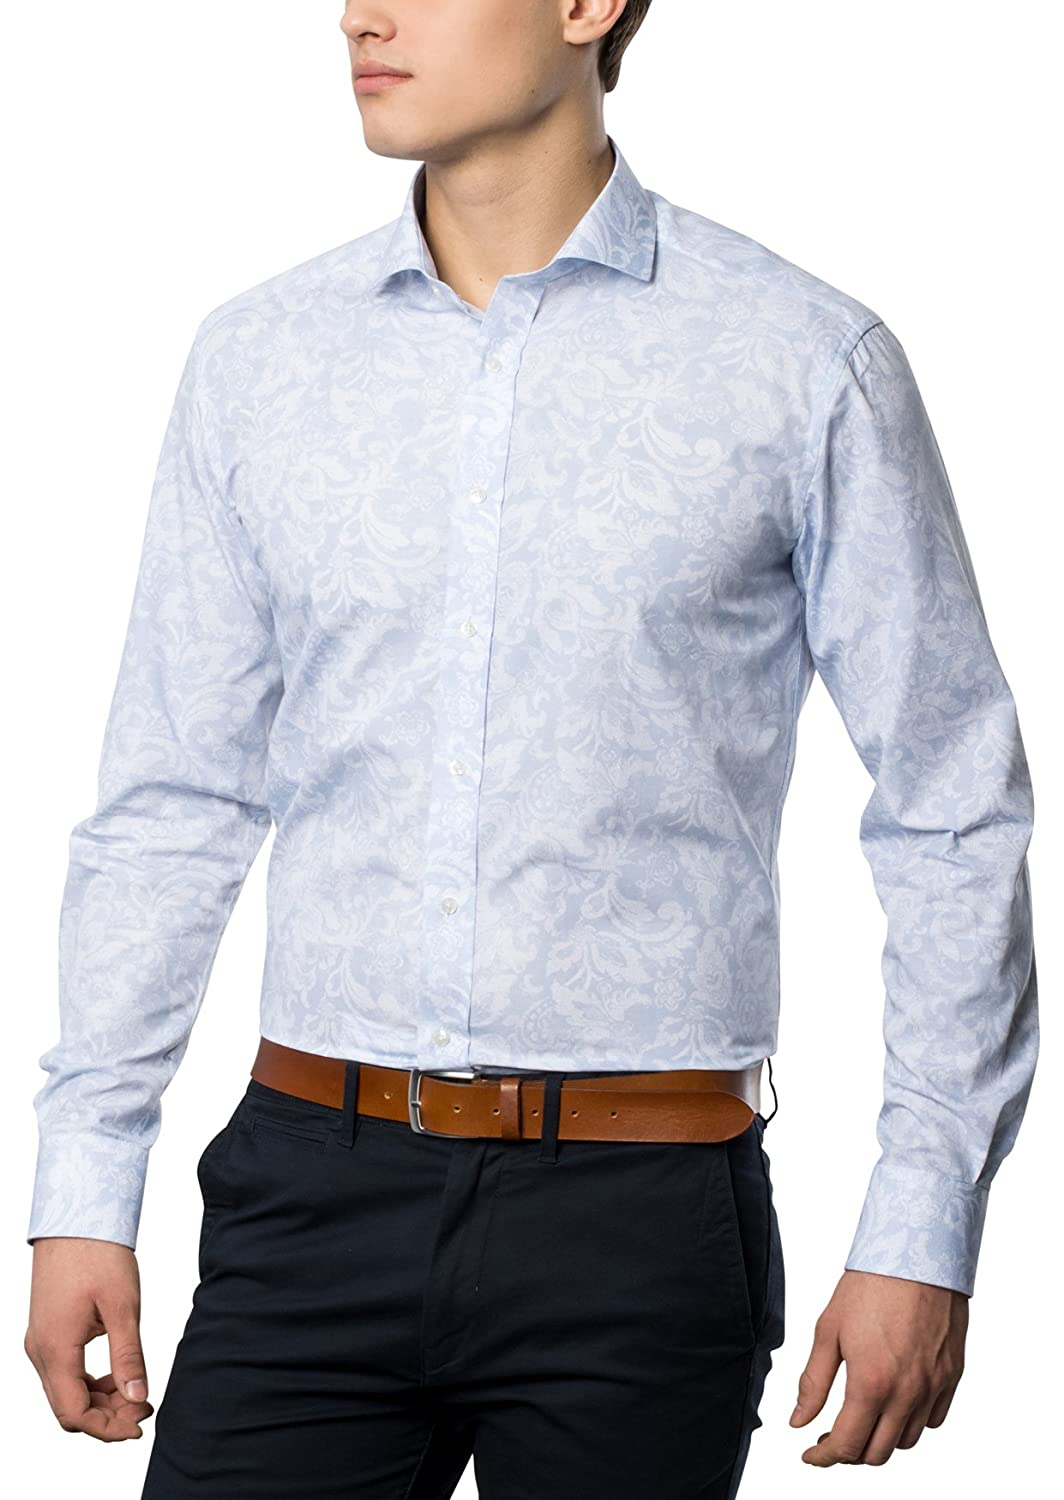 ETERNA Men's MODERN FIT long sleeve shirt light blue patterned